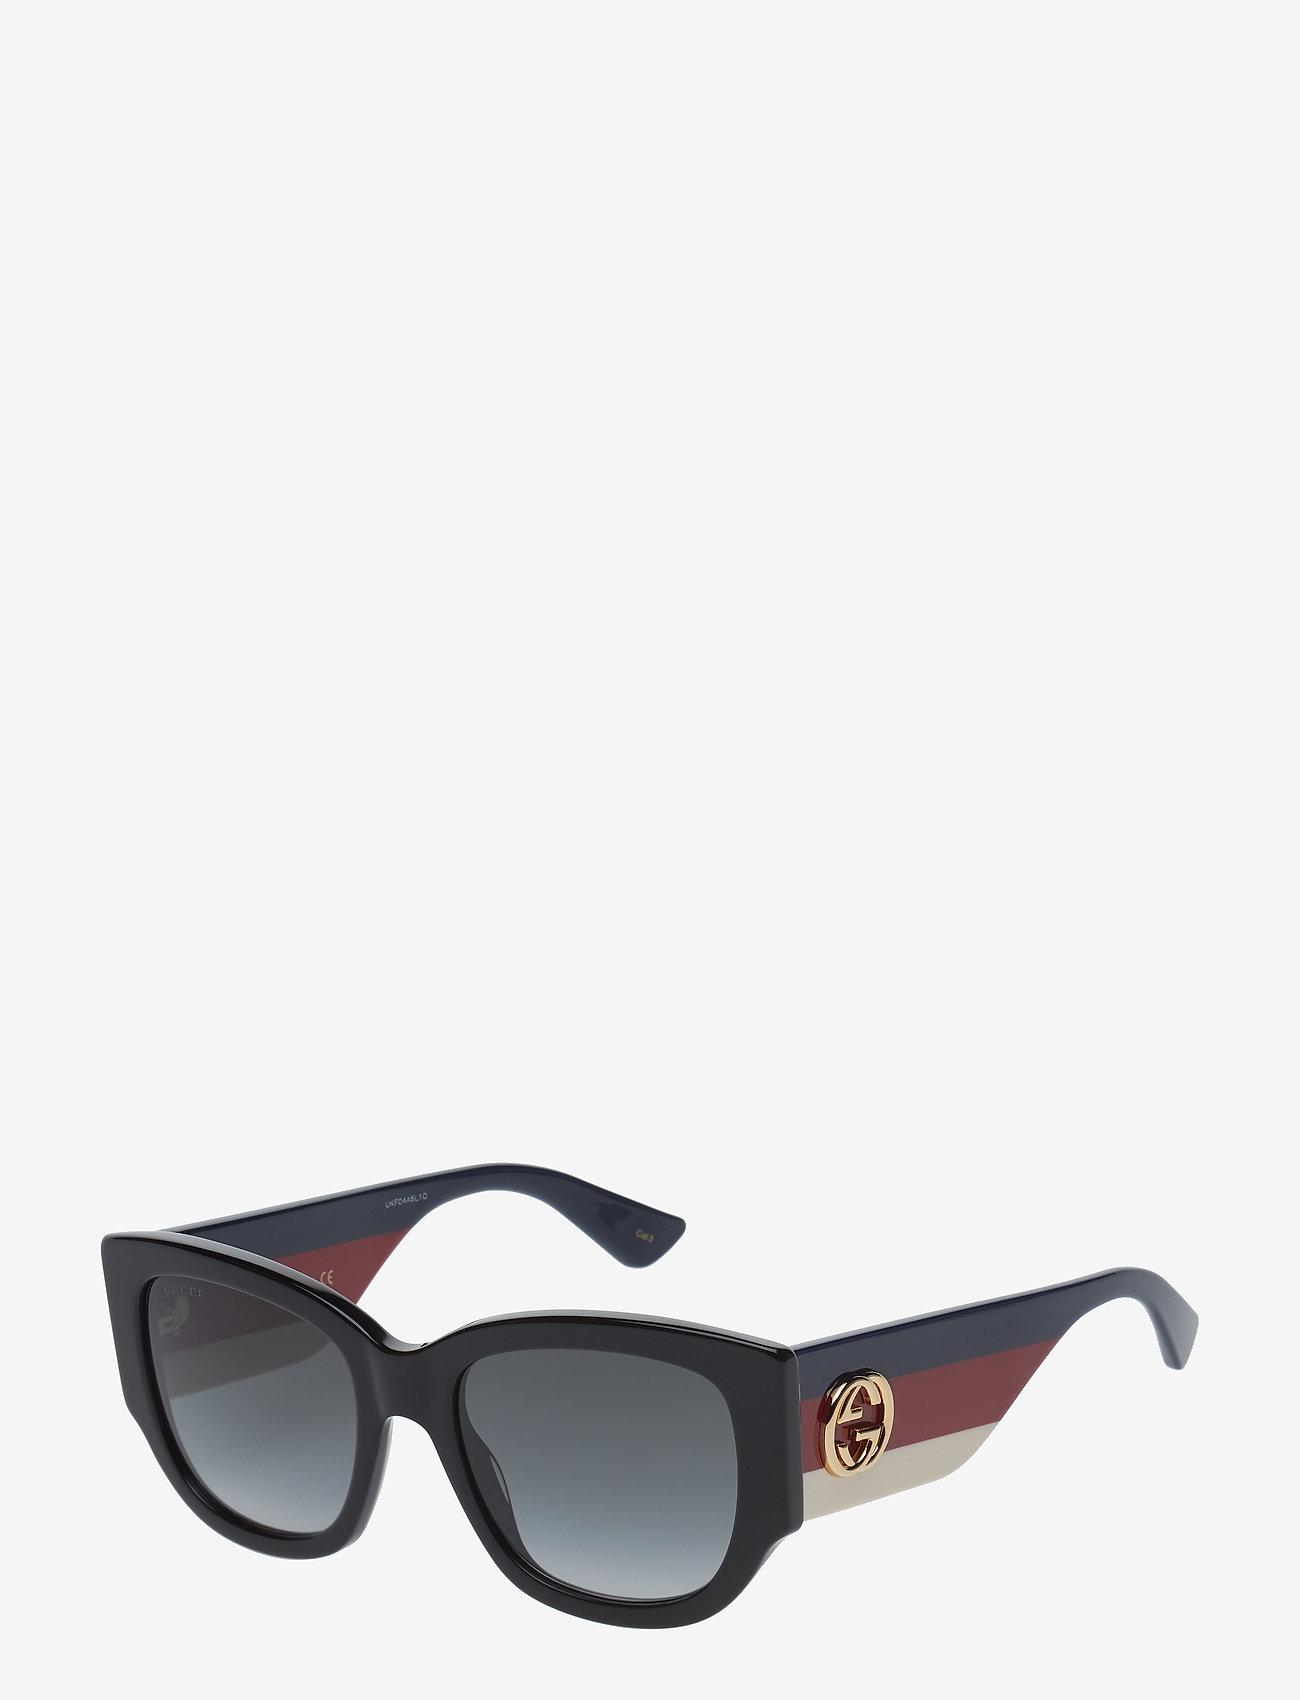 Gucci Sunglasses - GG0276S - d-shaped - black-multicolor-grey - 1